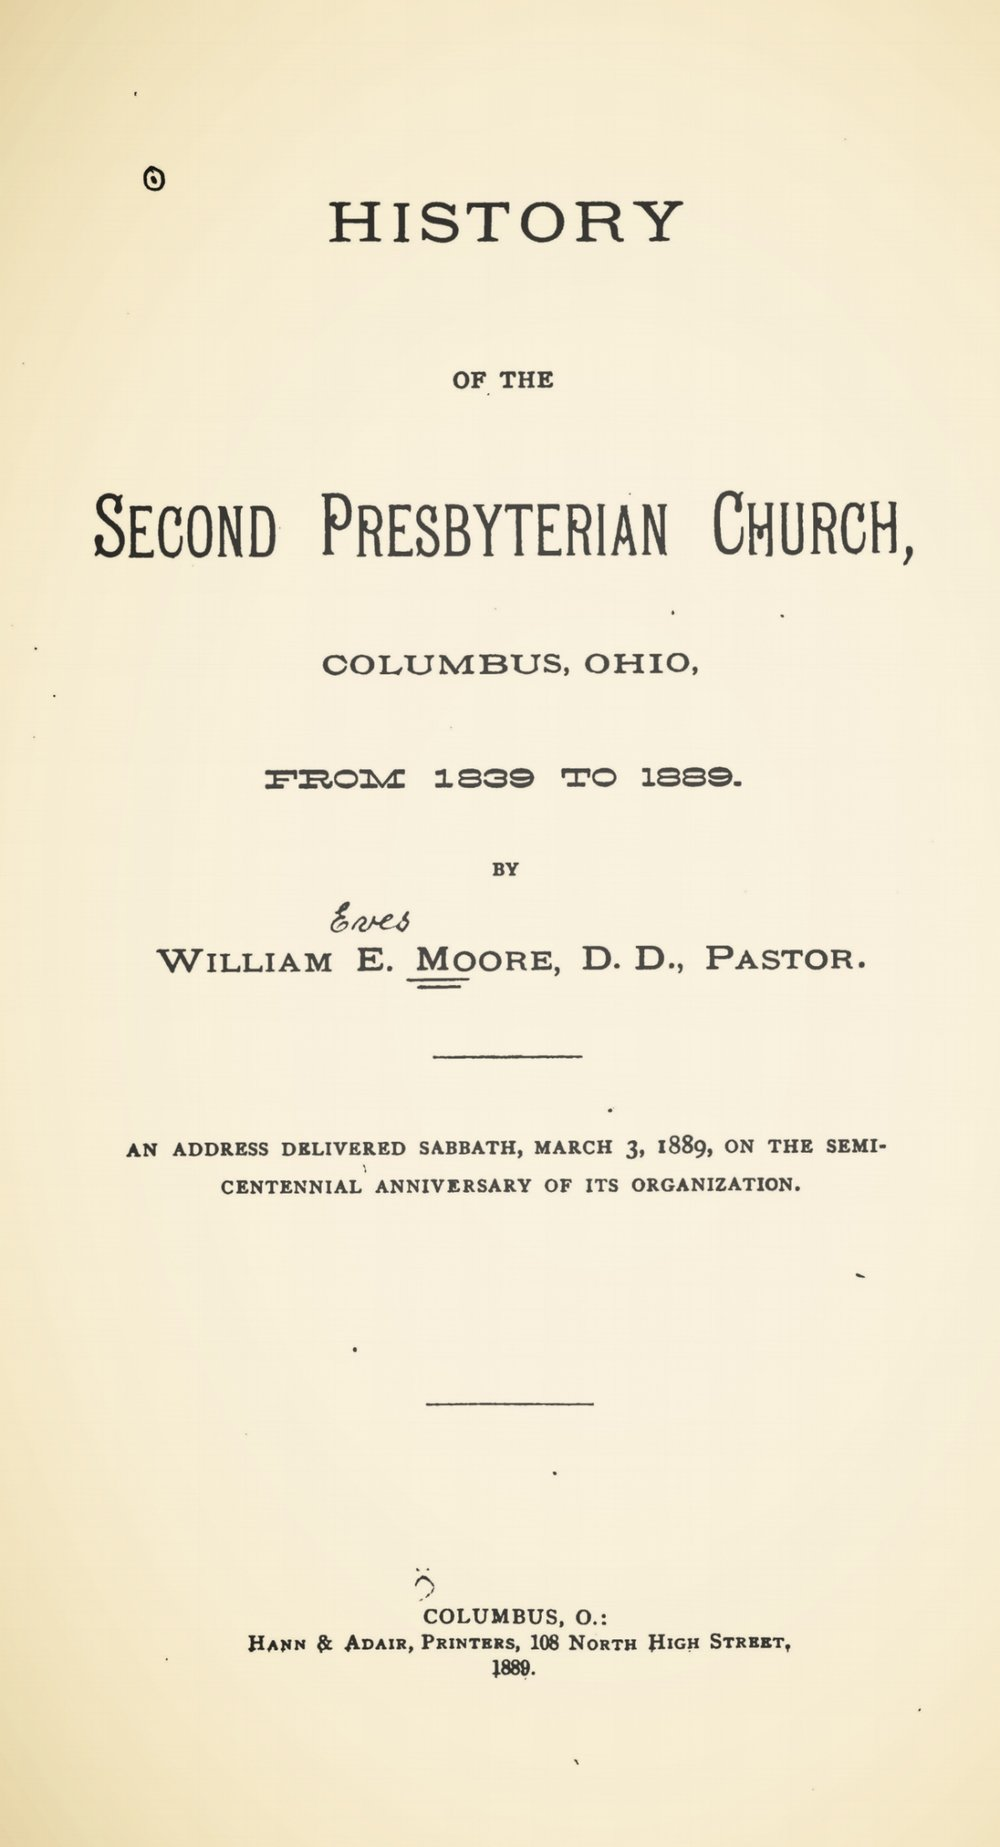 Moore, William Eves, History of the Second Presbyterian Church, Columbus, Ohio Title Page.jpg